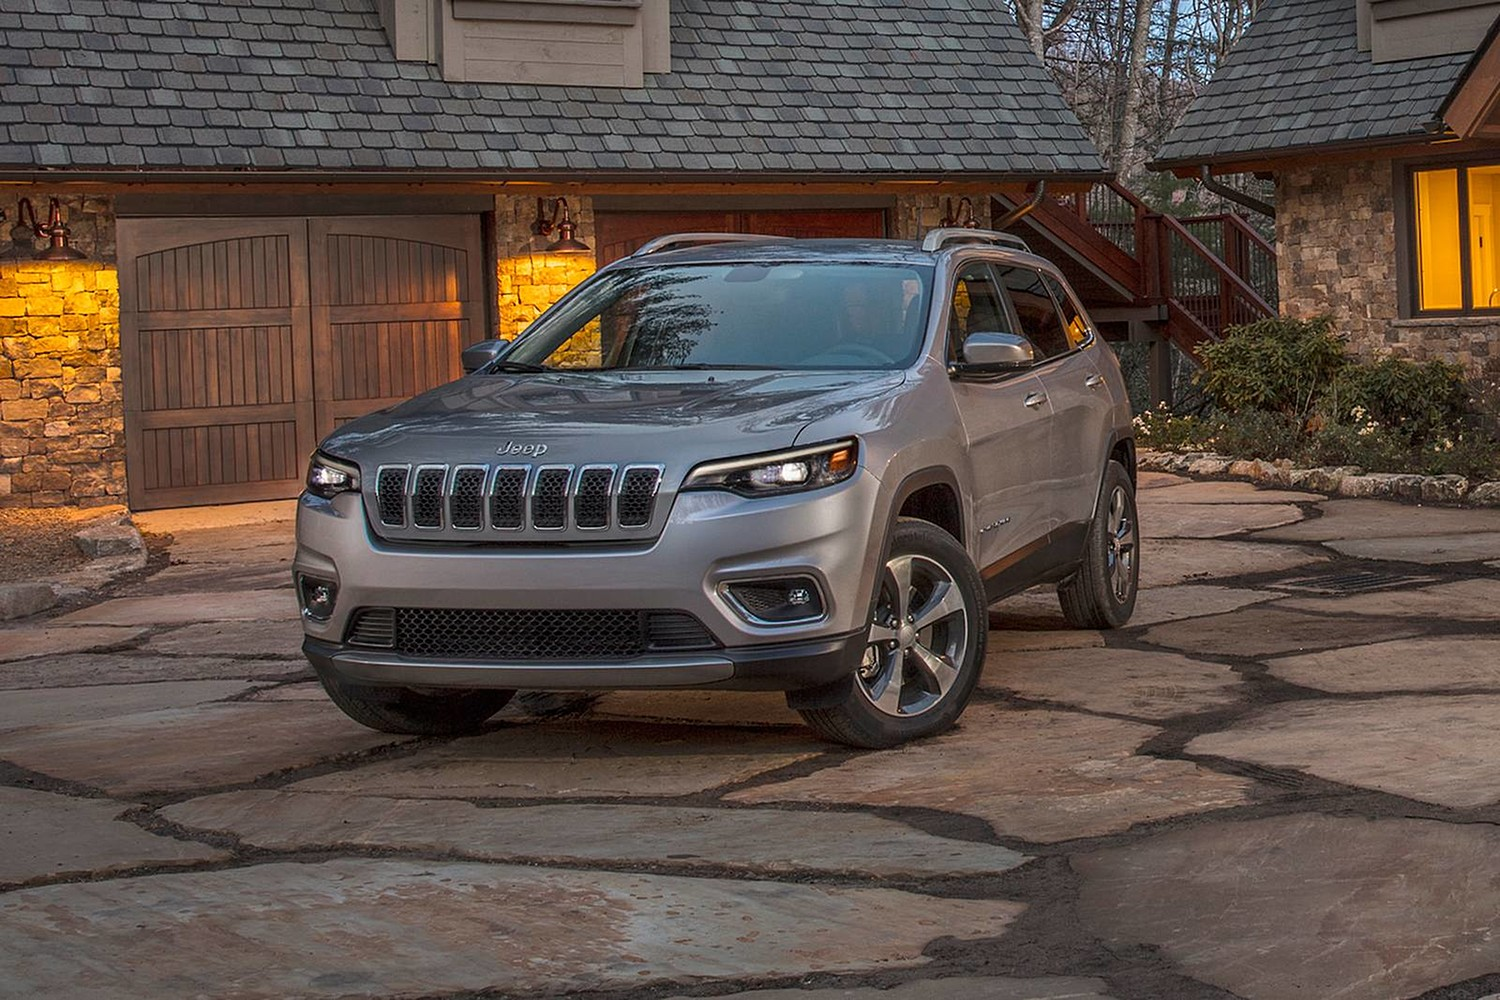 2019 Jeep Cherokee Limited 4dr SUV Exterior Shown